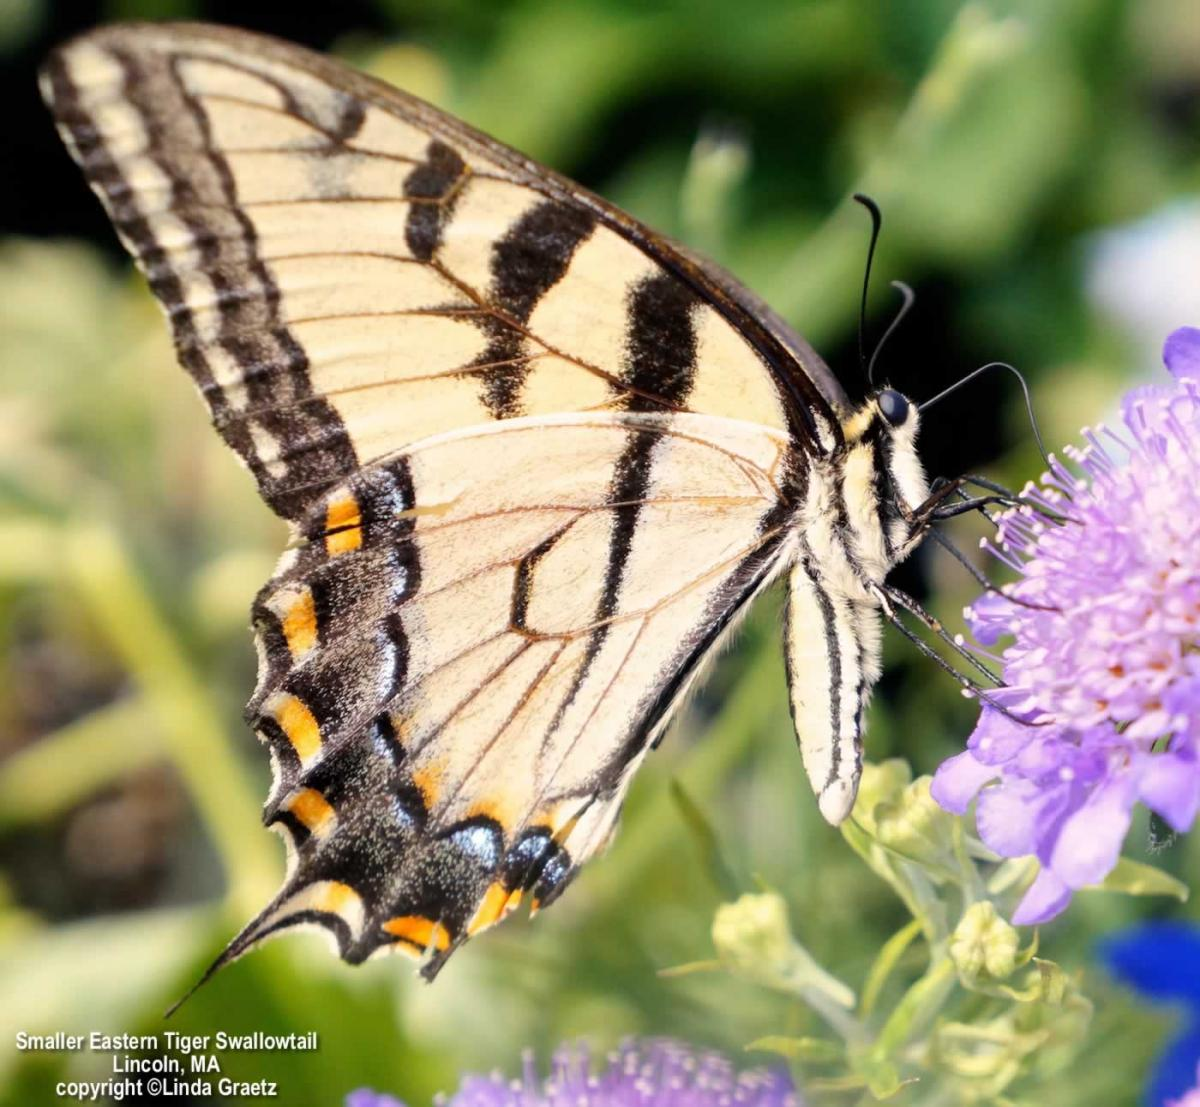 Eastern Tiger Swallowtail, Lincoln, MA Copyright Linda Graetz